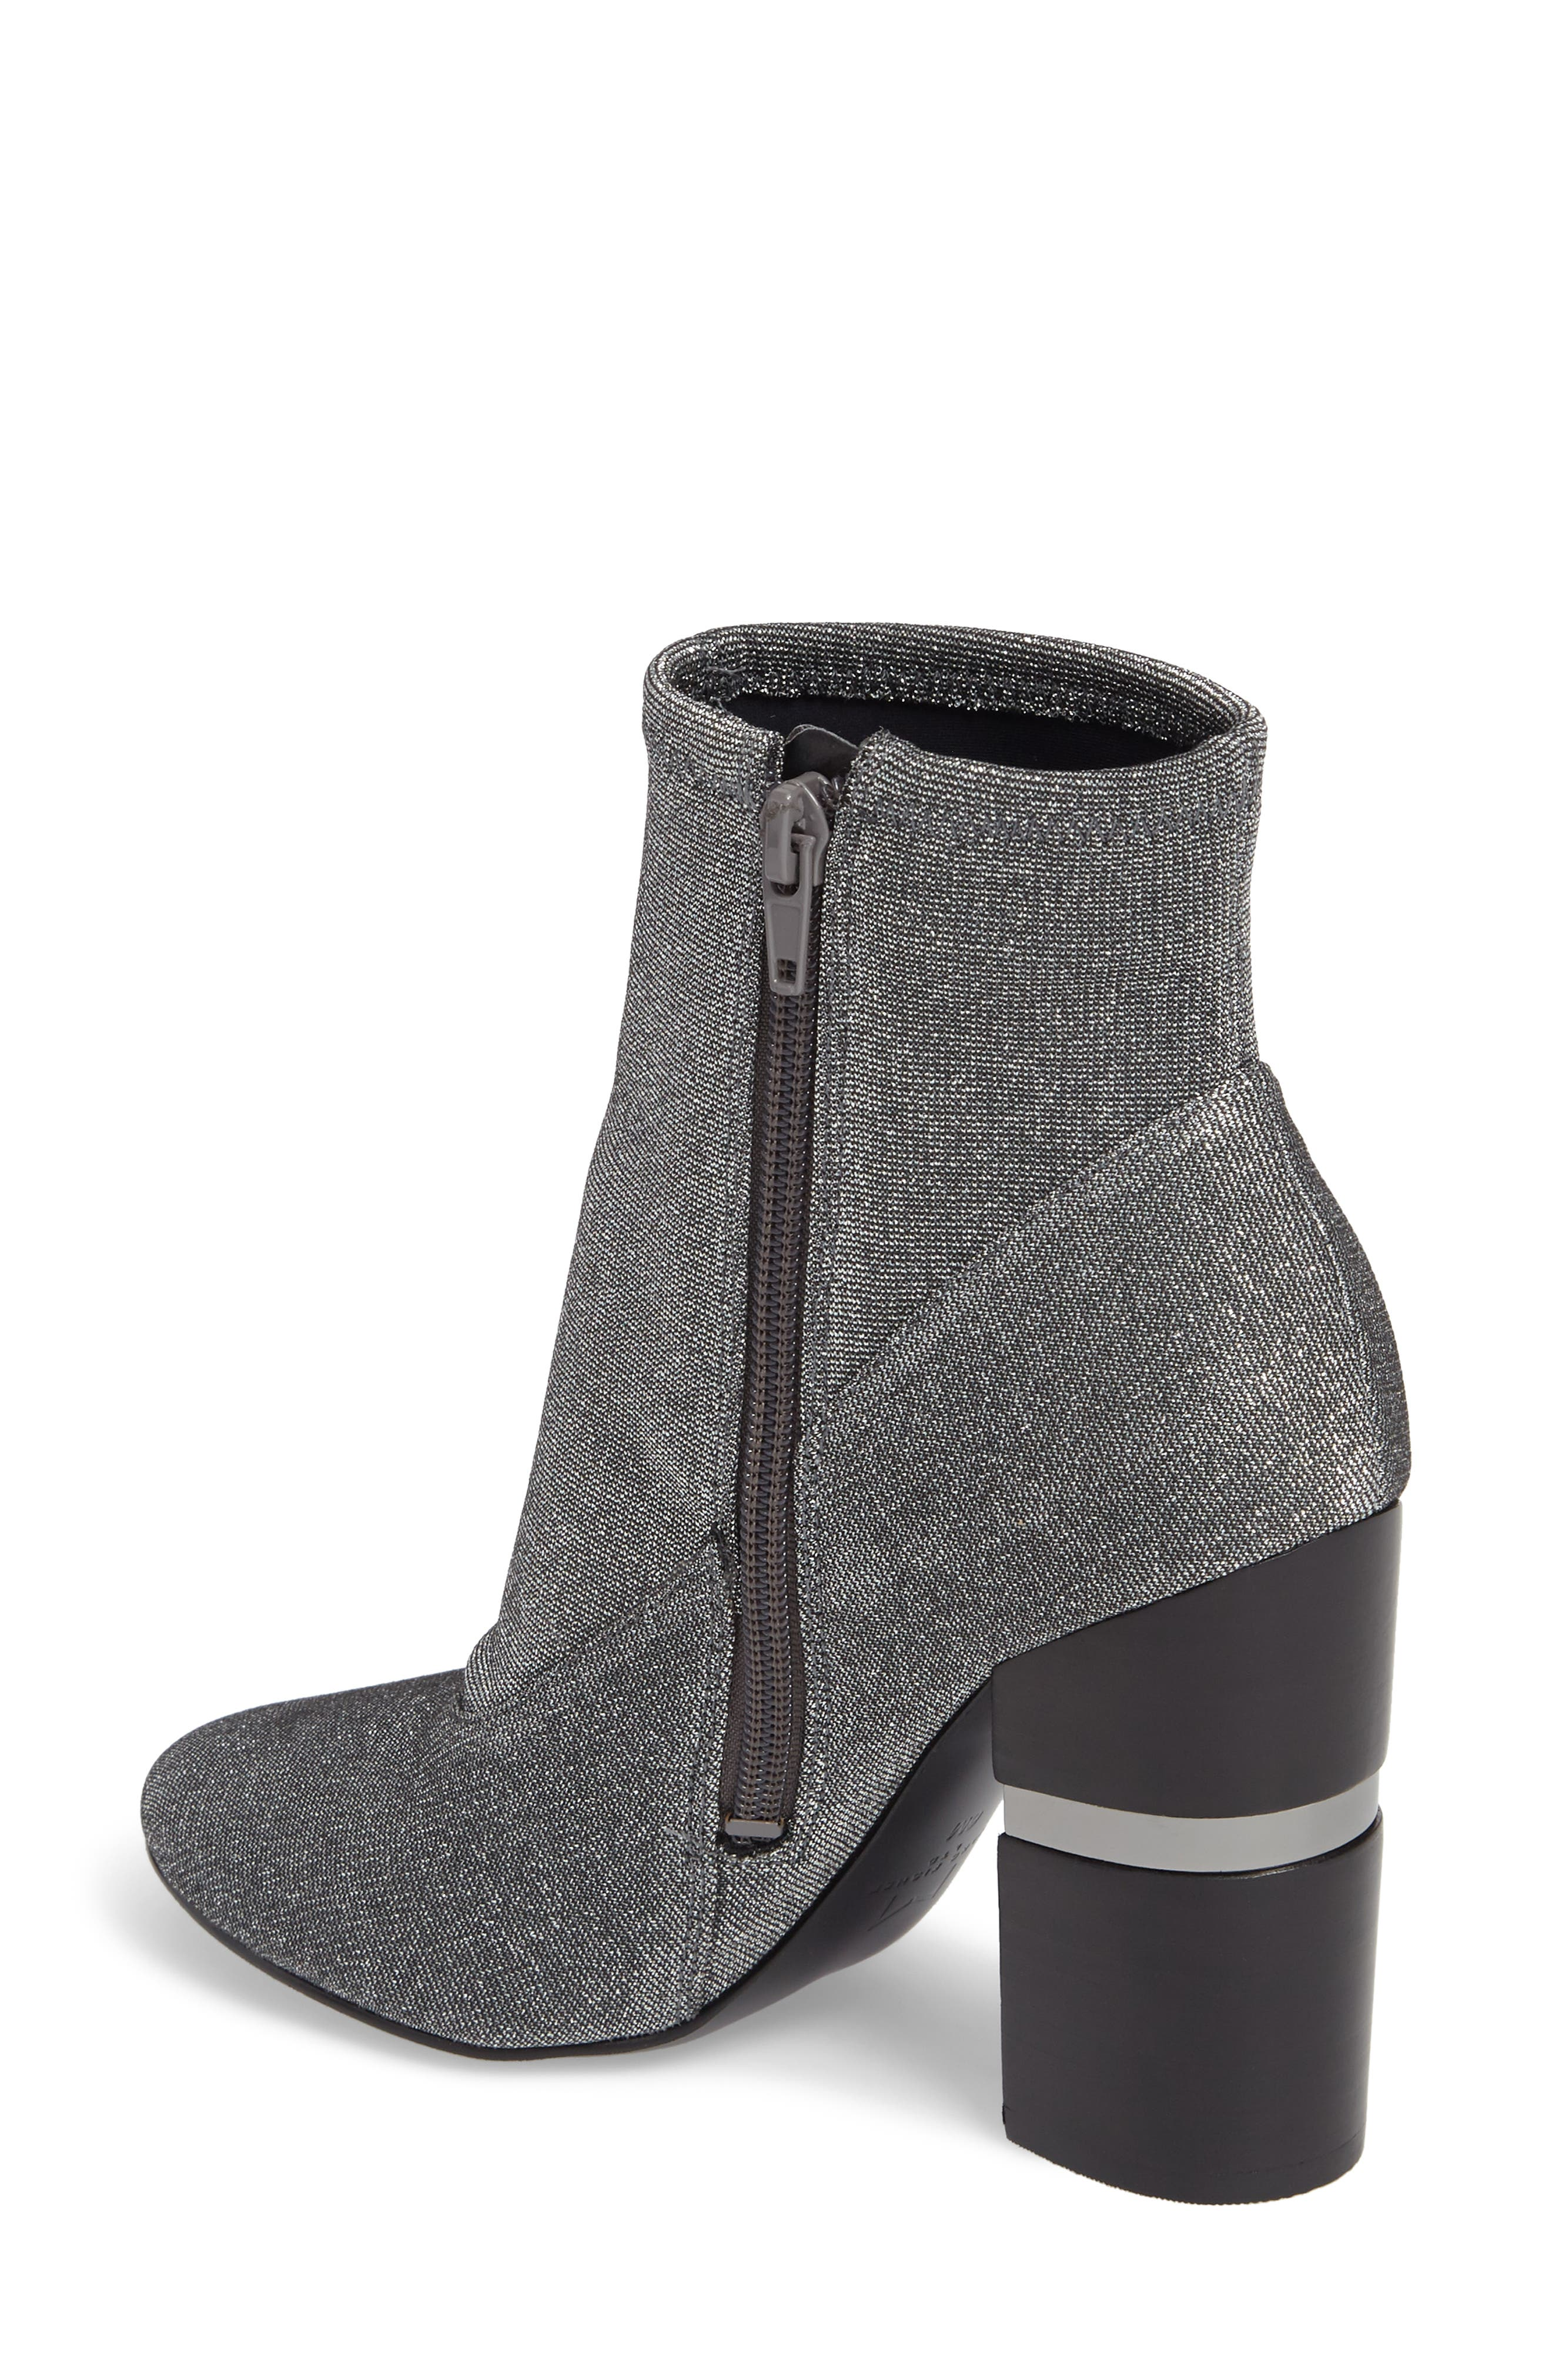 Padda Embellished Stretch Bootie,                             Alternate thumbnail 2, color,                             Silver Glitter Fabric